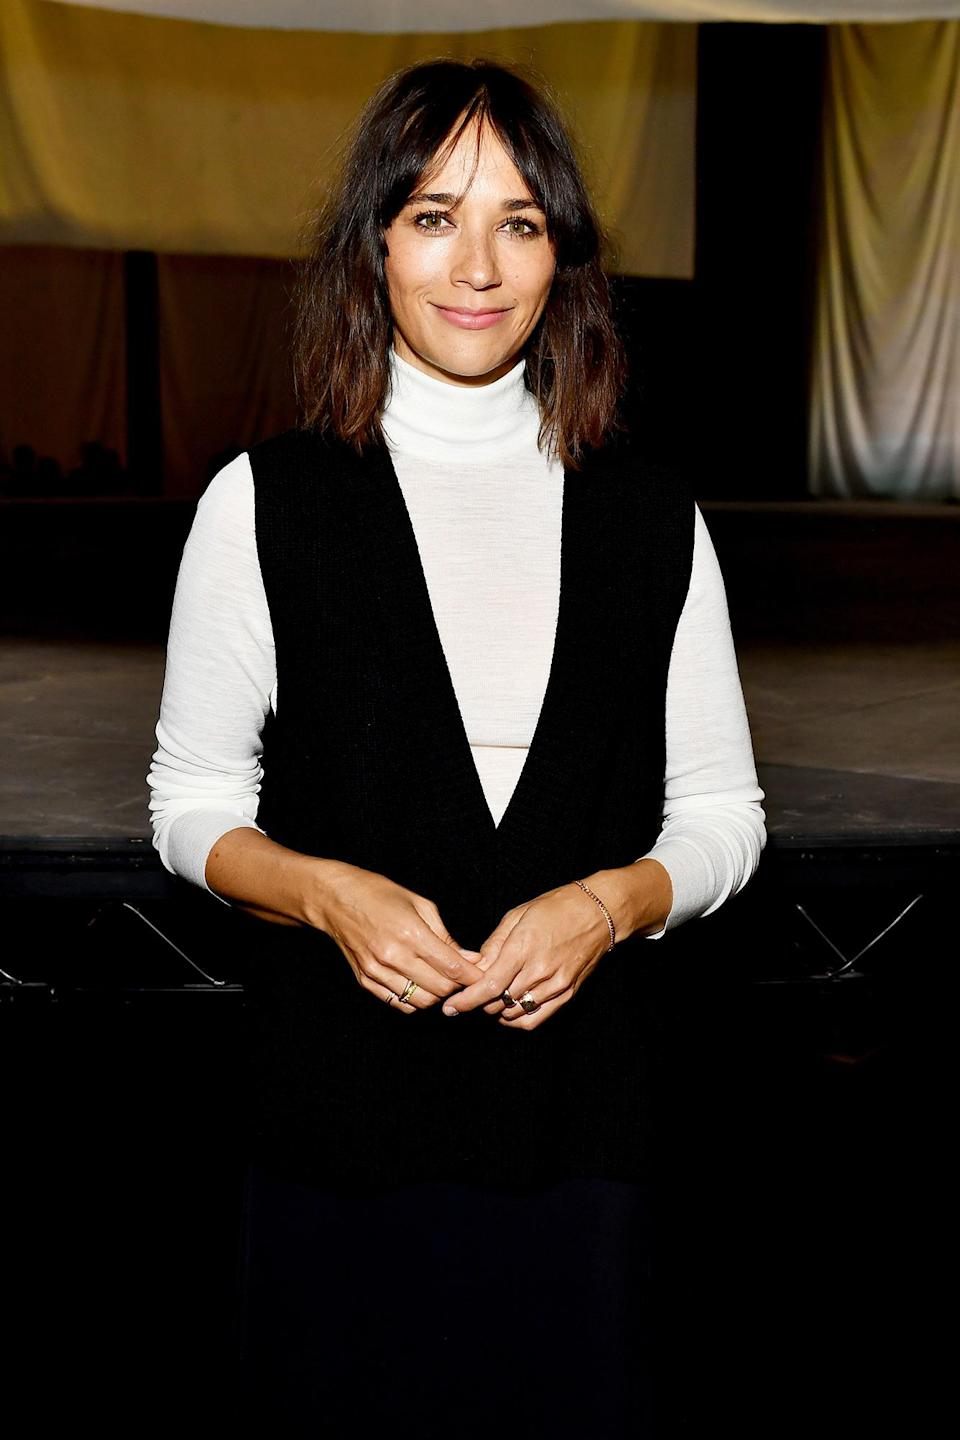 <p>Rashida Jones looks ready for fall on Sept. 21 at the COS show at The Roundhouse during London Fashion Week. </p>